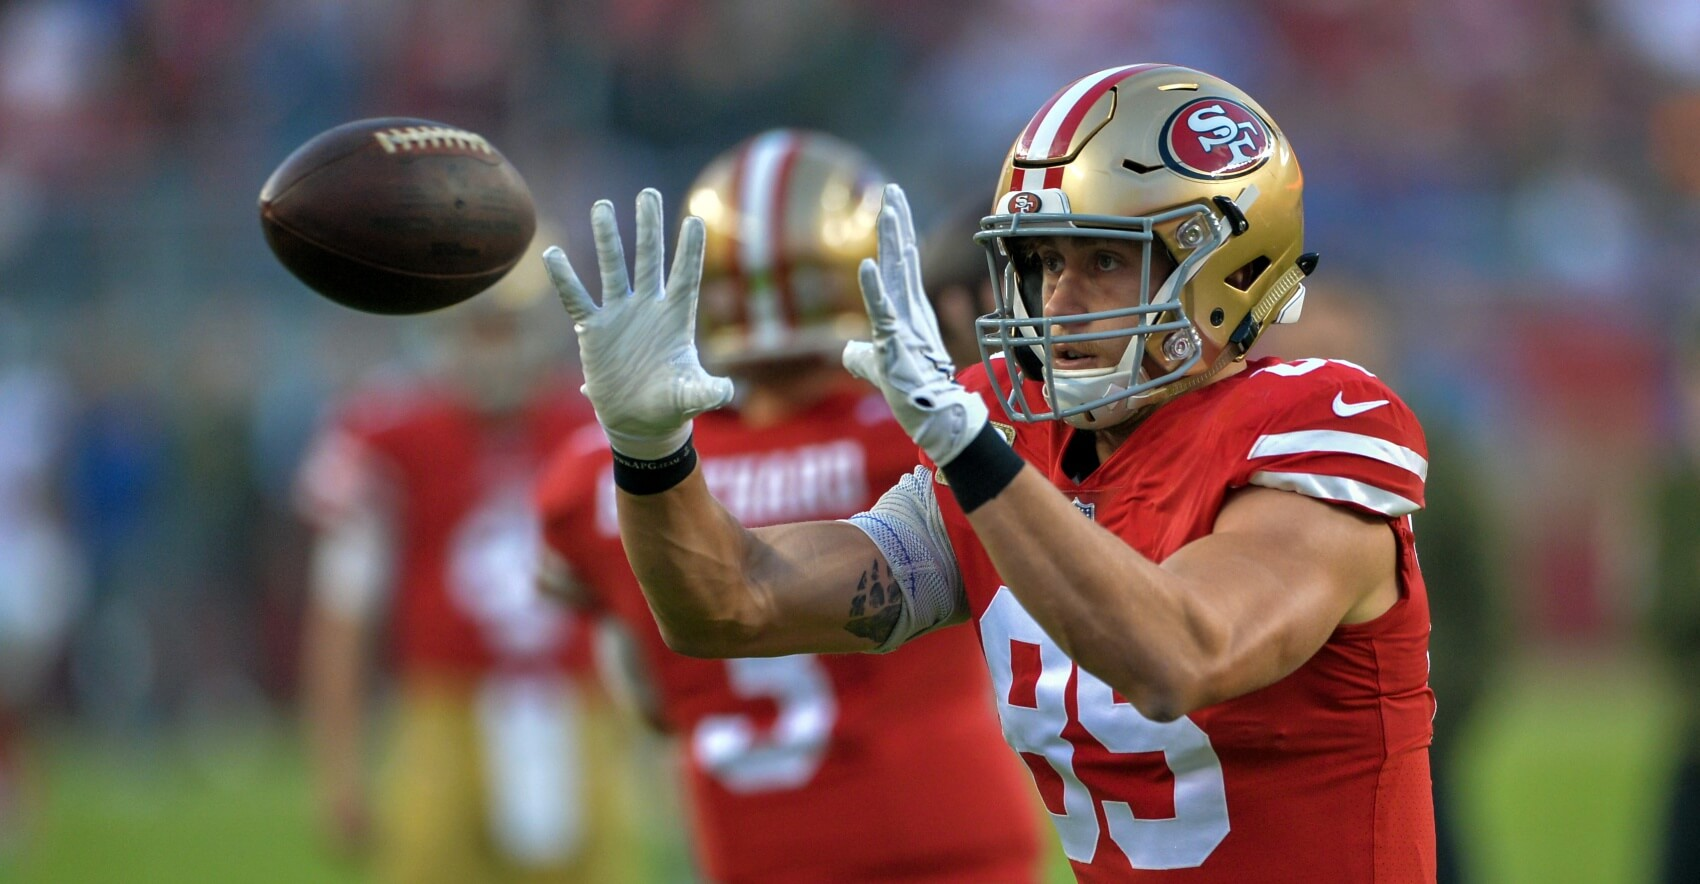 Fantasy Football: Narrowing the Field to Find 2019's George Kittle